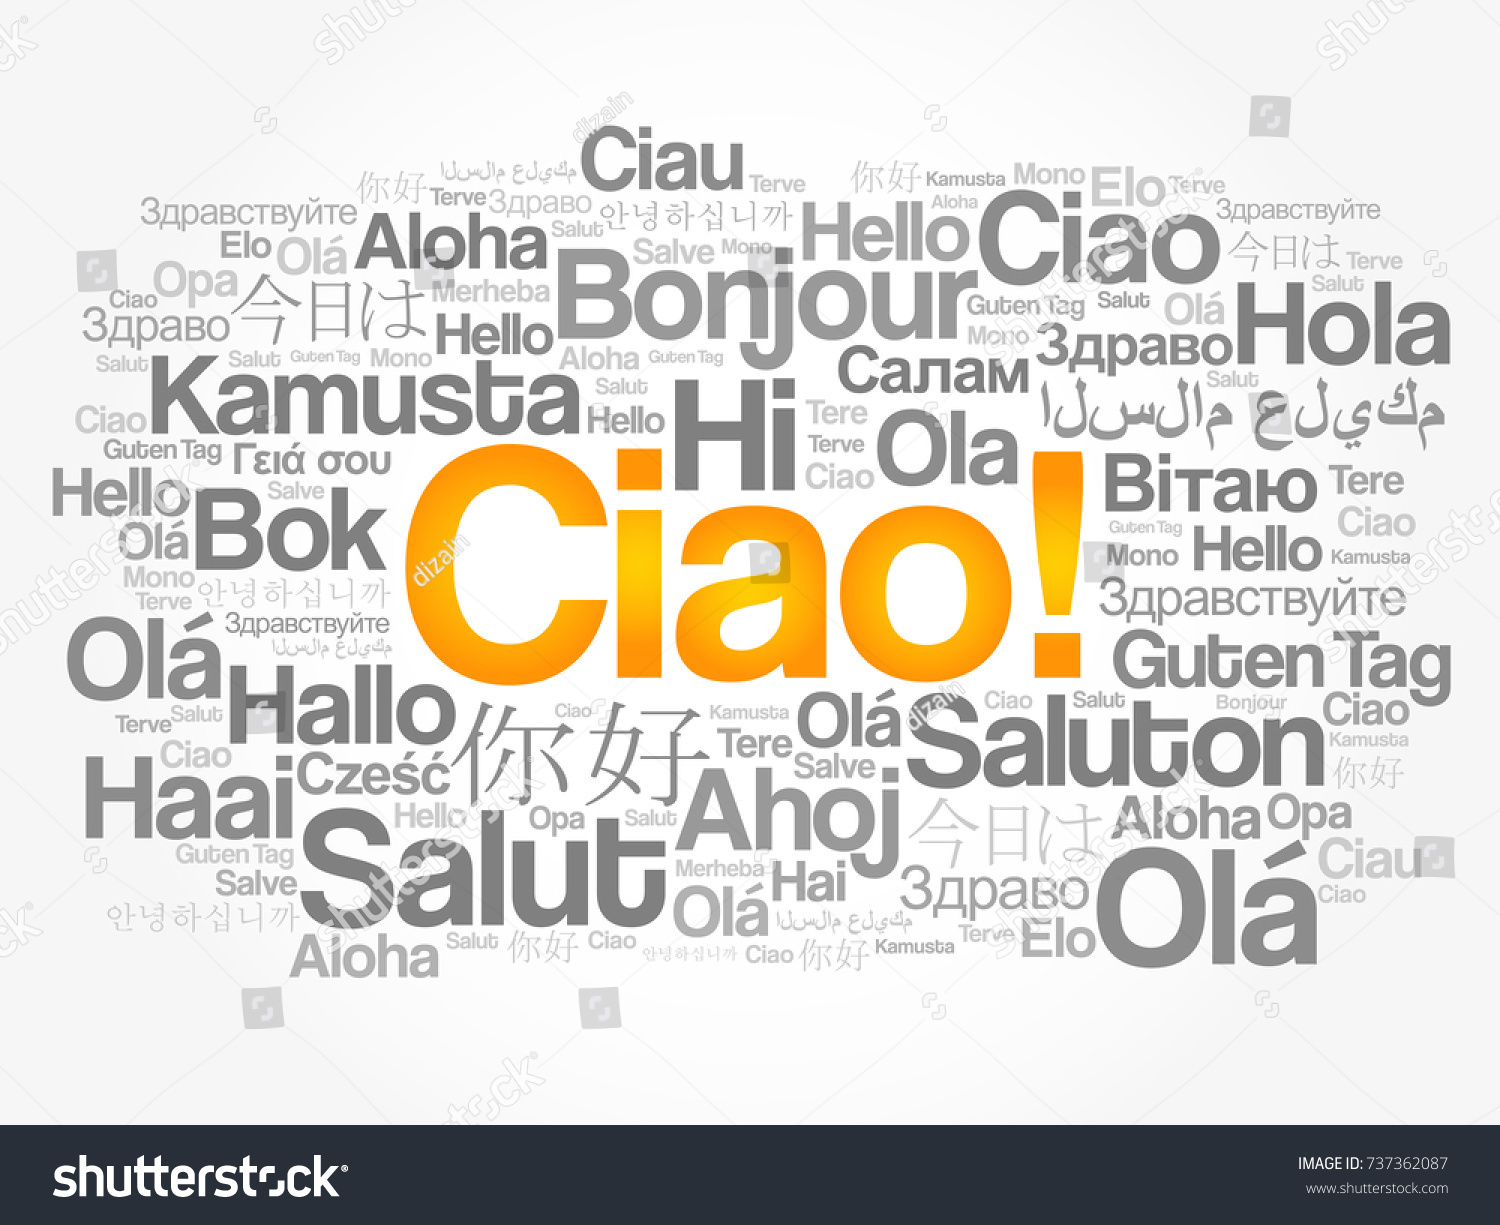 Ciao Hello Greeting Italian Word Cloud Stock Vector 2018 737362087